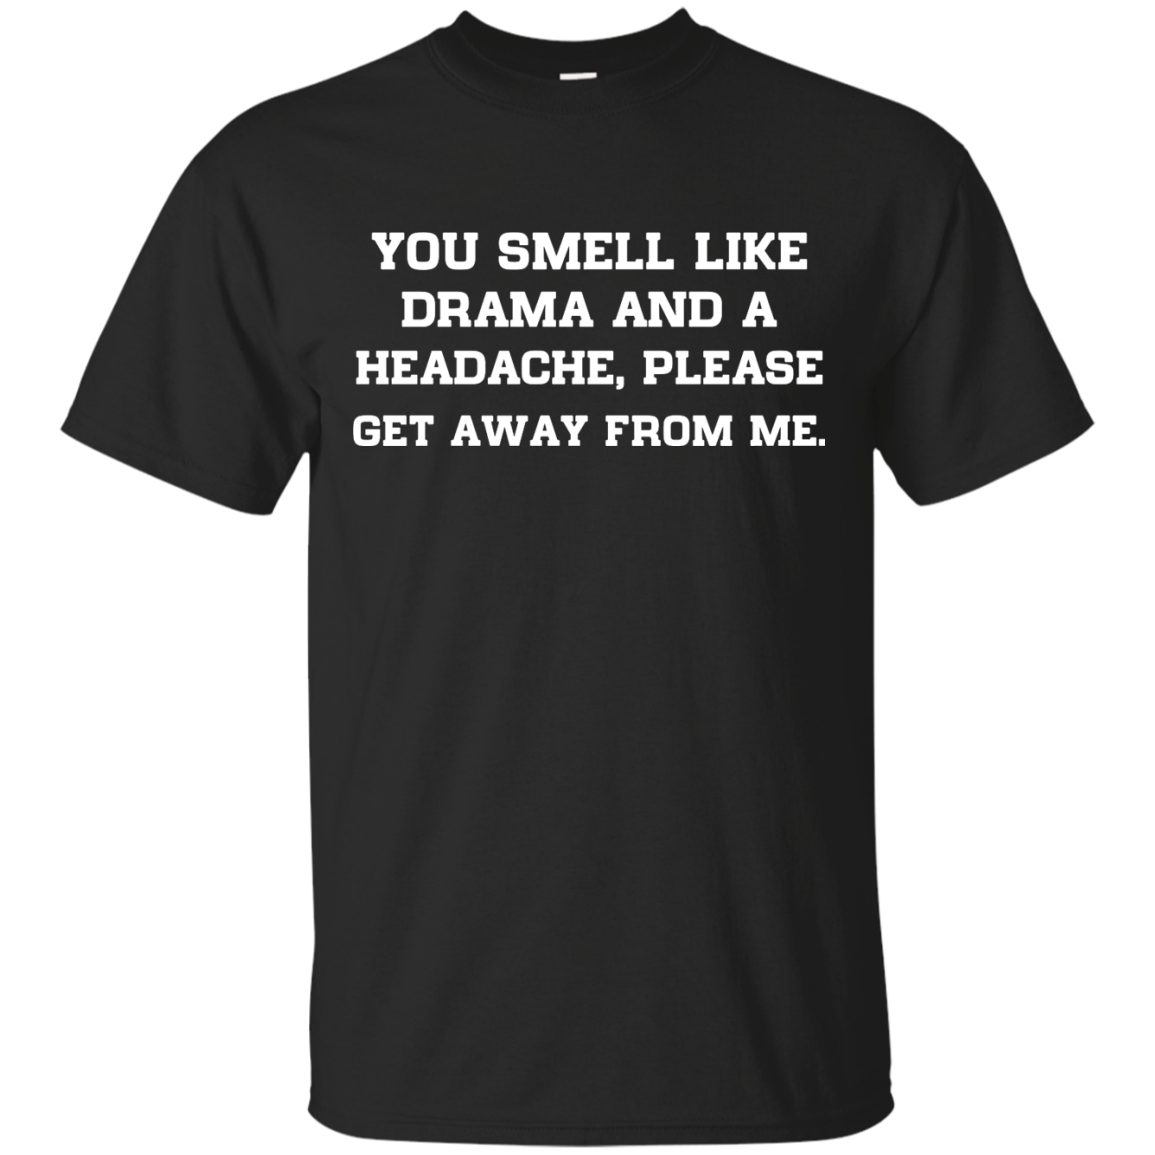 You smell like drama and a headache please get away from me unisex t shirt,tank,hoodie,sweater